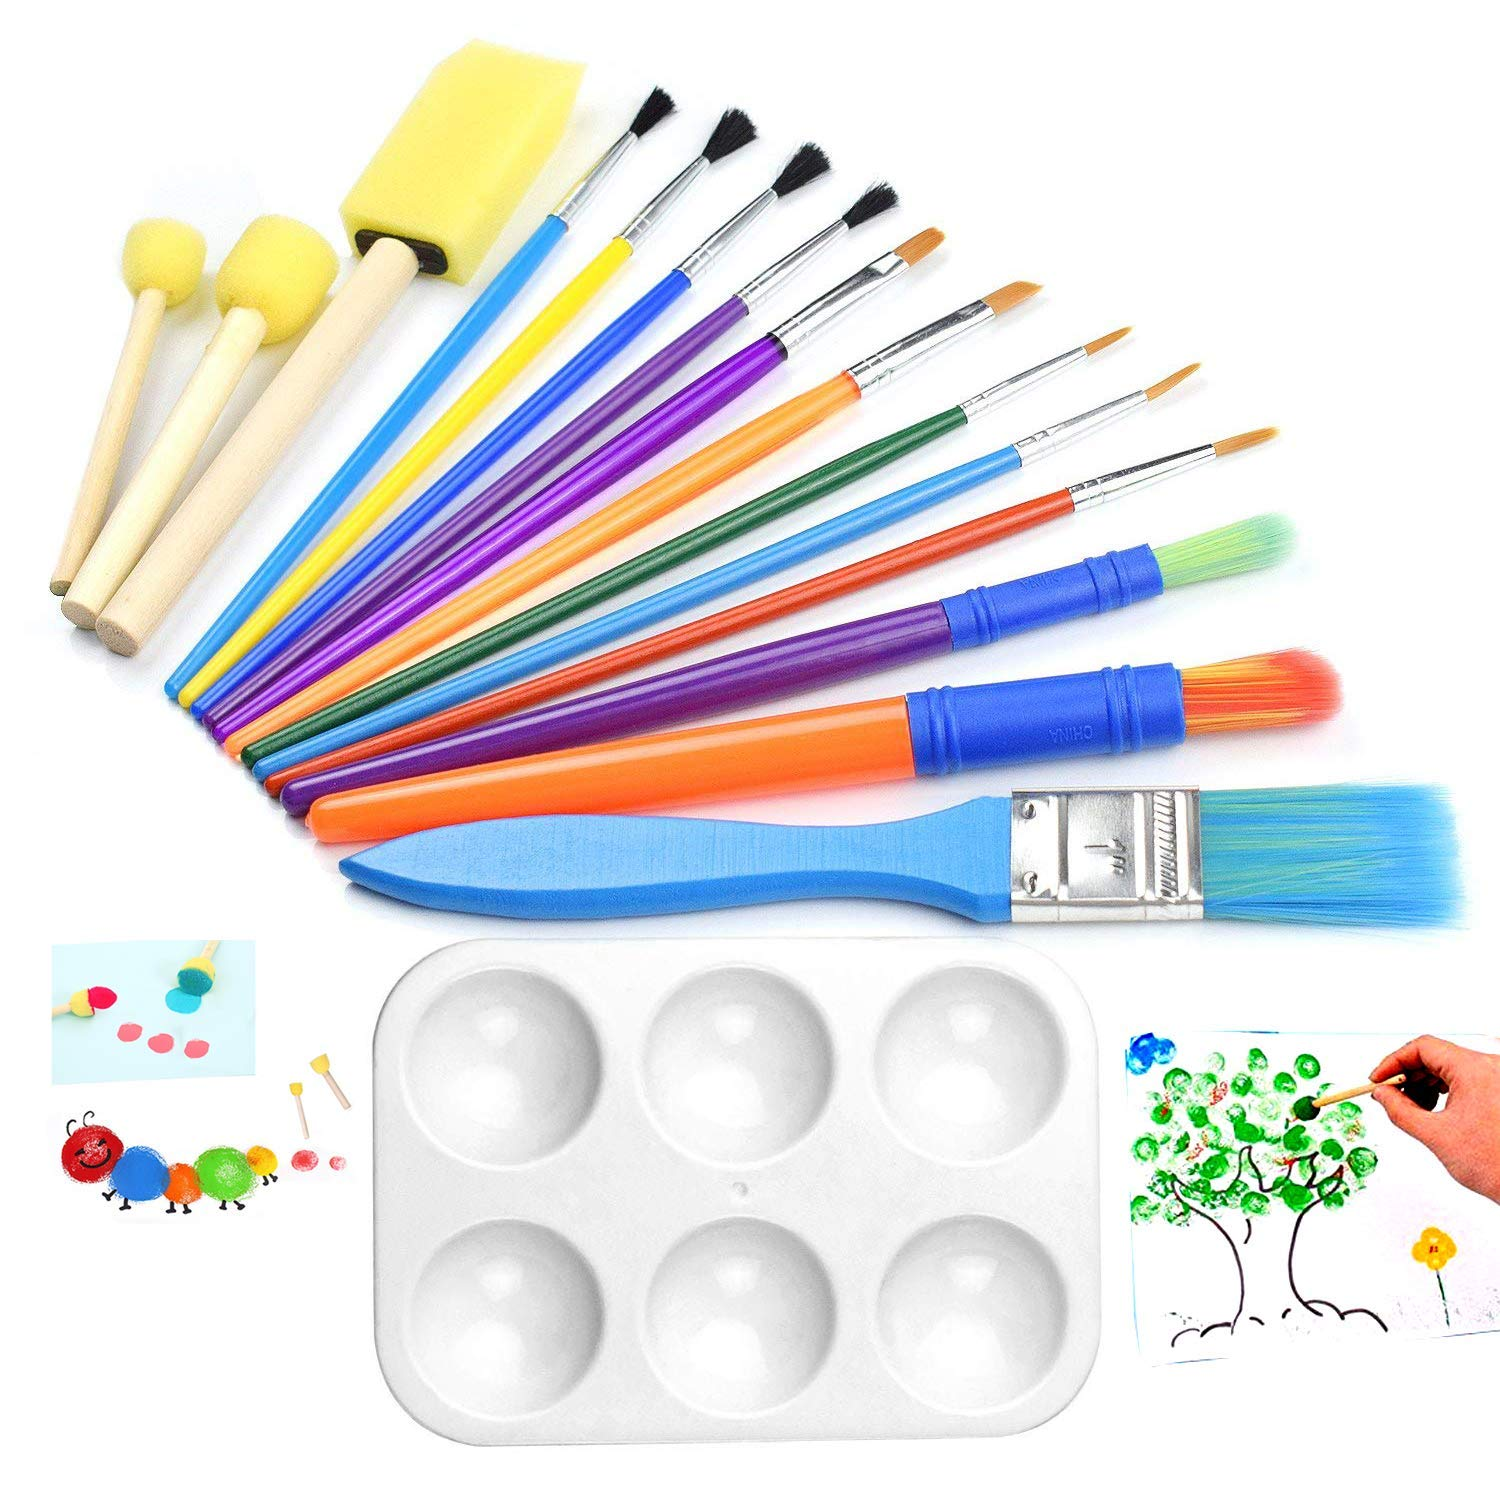 Artistycm 16 Pieces Art Paint Brushes Set Kid Little Artist Beginner with One Mixing Color Tray Palette Acrylic, Oil, Watercolors